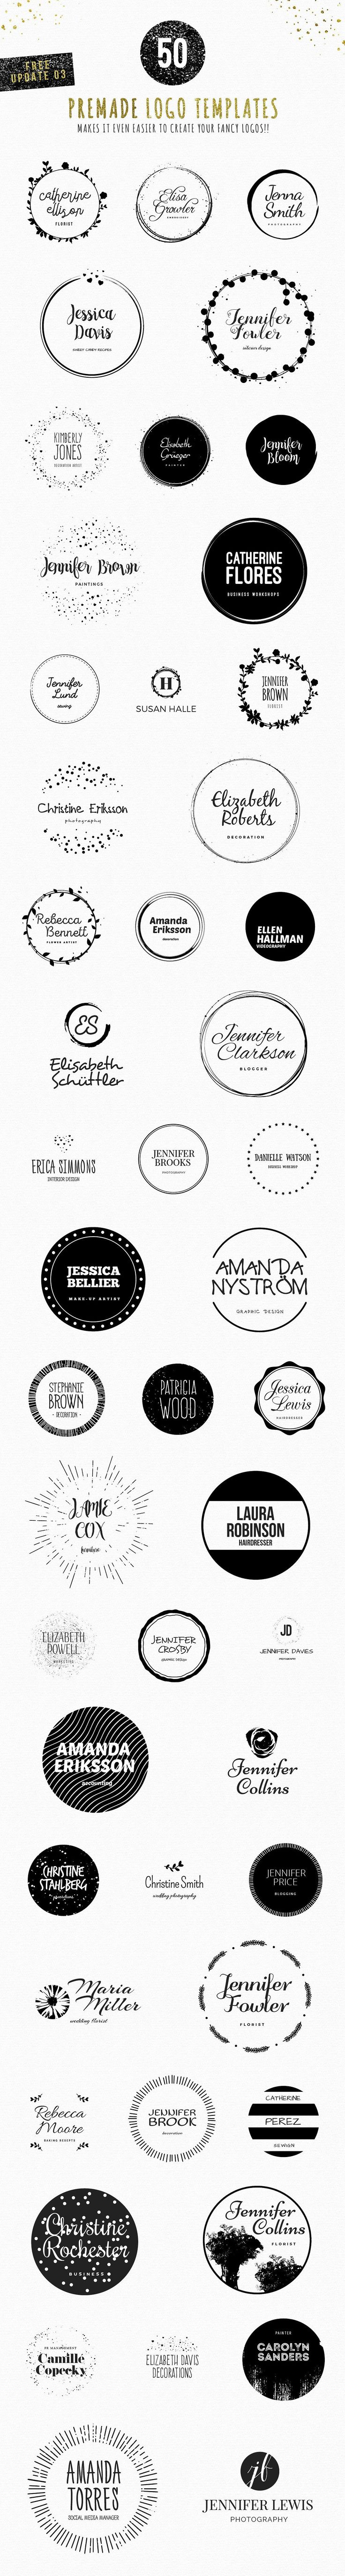 Feminine Logo Creator Circle Edition by WornOutMedia Co. on @creativemarket | Make thousands of modern, glittery and glamorous logos for women's businesses like photography, blogging, food business, graphic design, hair stylist, cosmetology, recipes and for any feminine business! This is the first and the last logo pack you'll ever need to create a feminine logo!